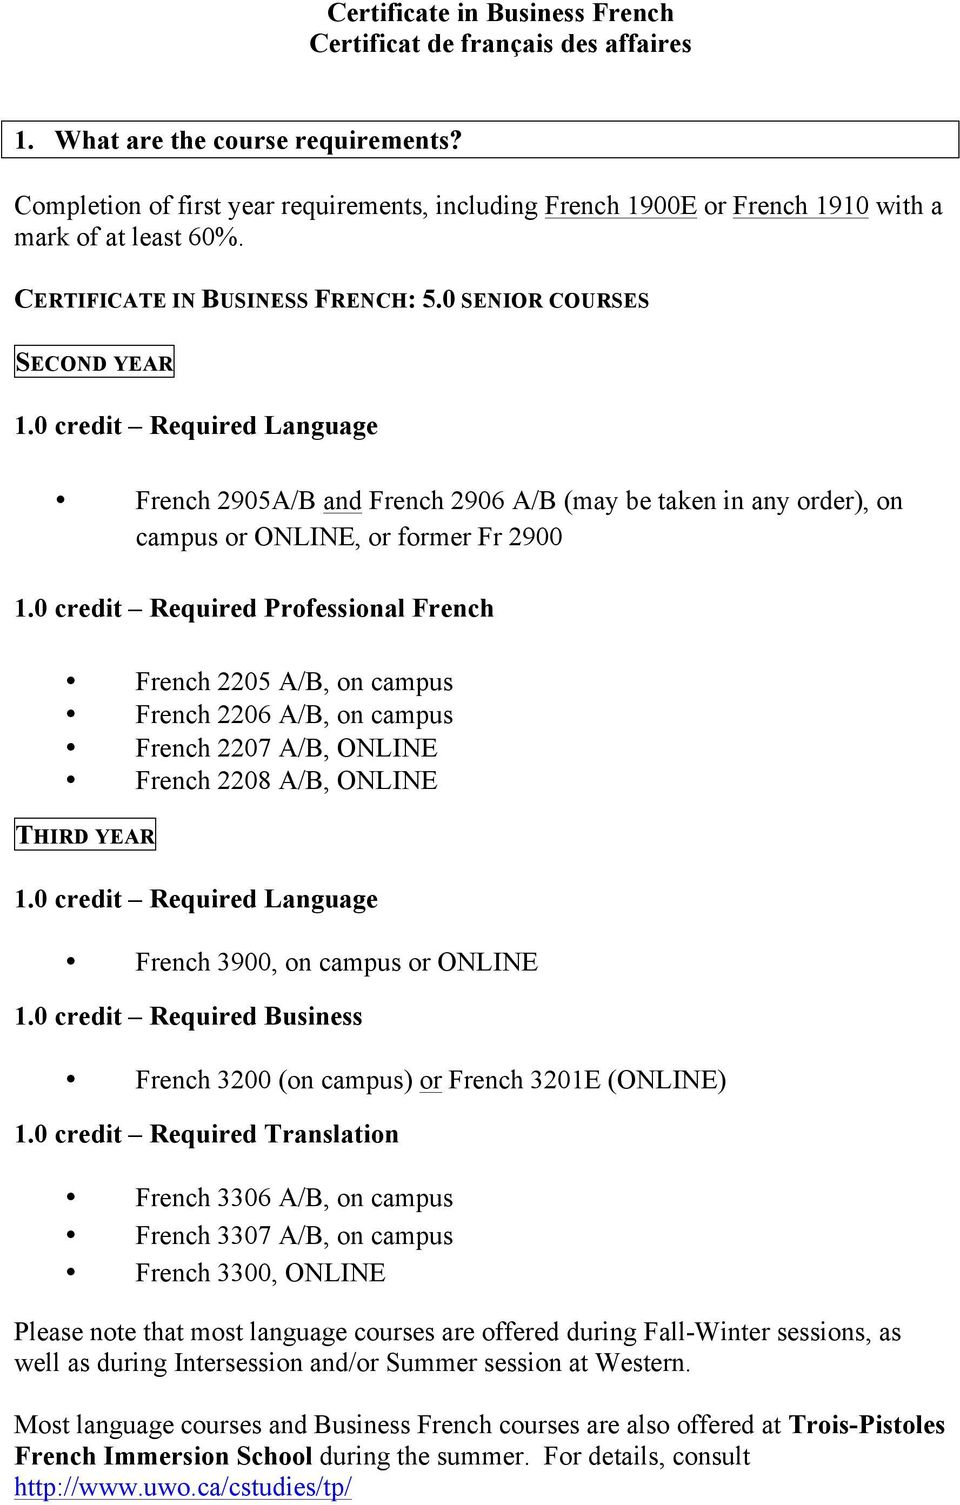 French 2905A/B and French 2906 A/B may be taken in any order), on campus or ONLINE, or former Fr 2900 1.